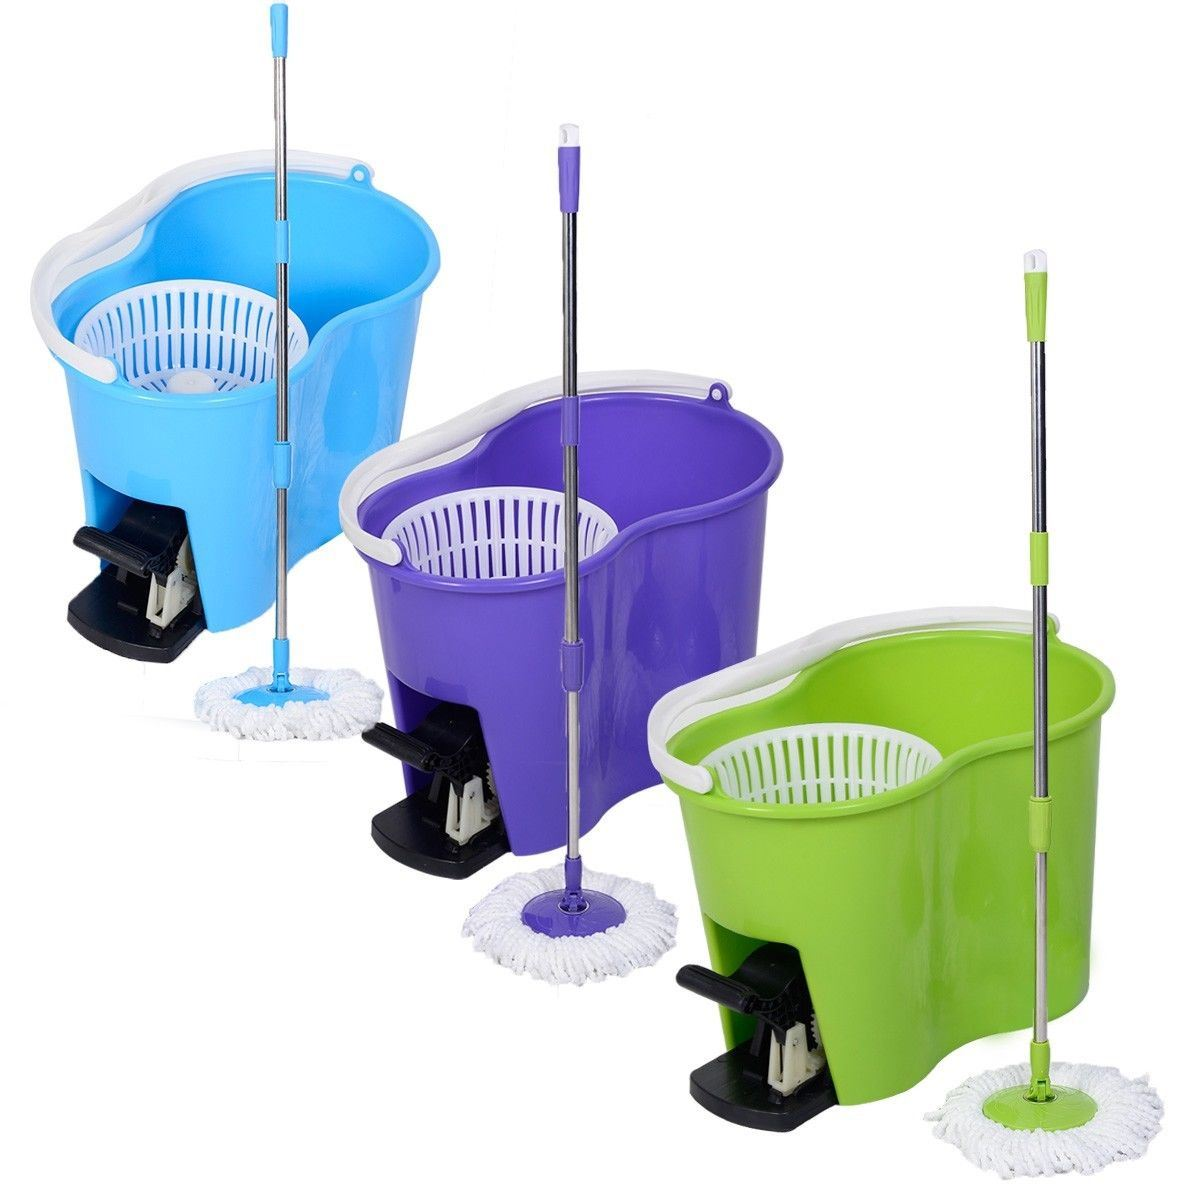 360 Degree Spin Mop And Bucket Set With Free 2 Mop Walmartcom